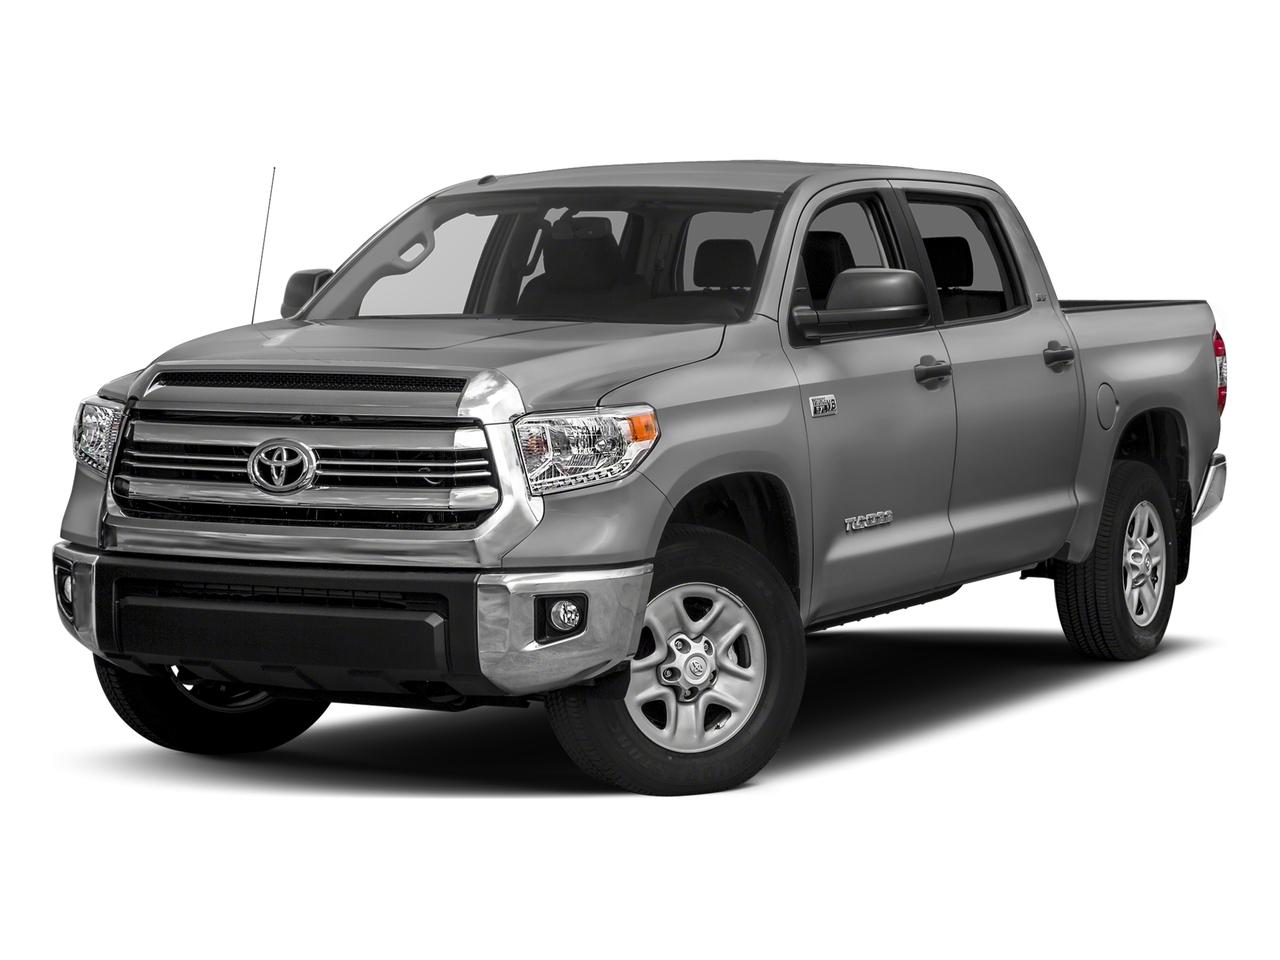 2017 Toyota Tundra 4WD Vehicle Photo in Evanston, WY 82930